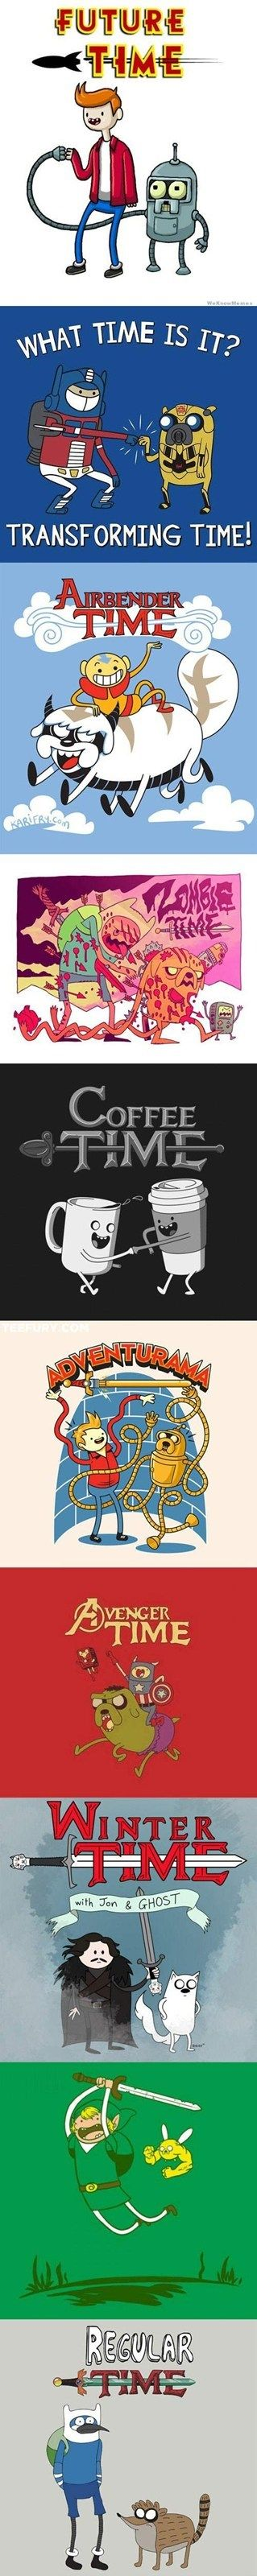 I combine Adventure Time and Regular together all the time by accident and call it Regular Time. xD